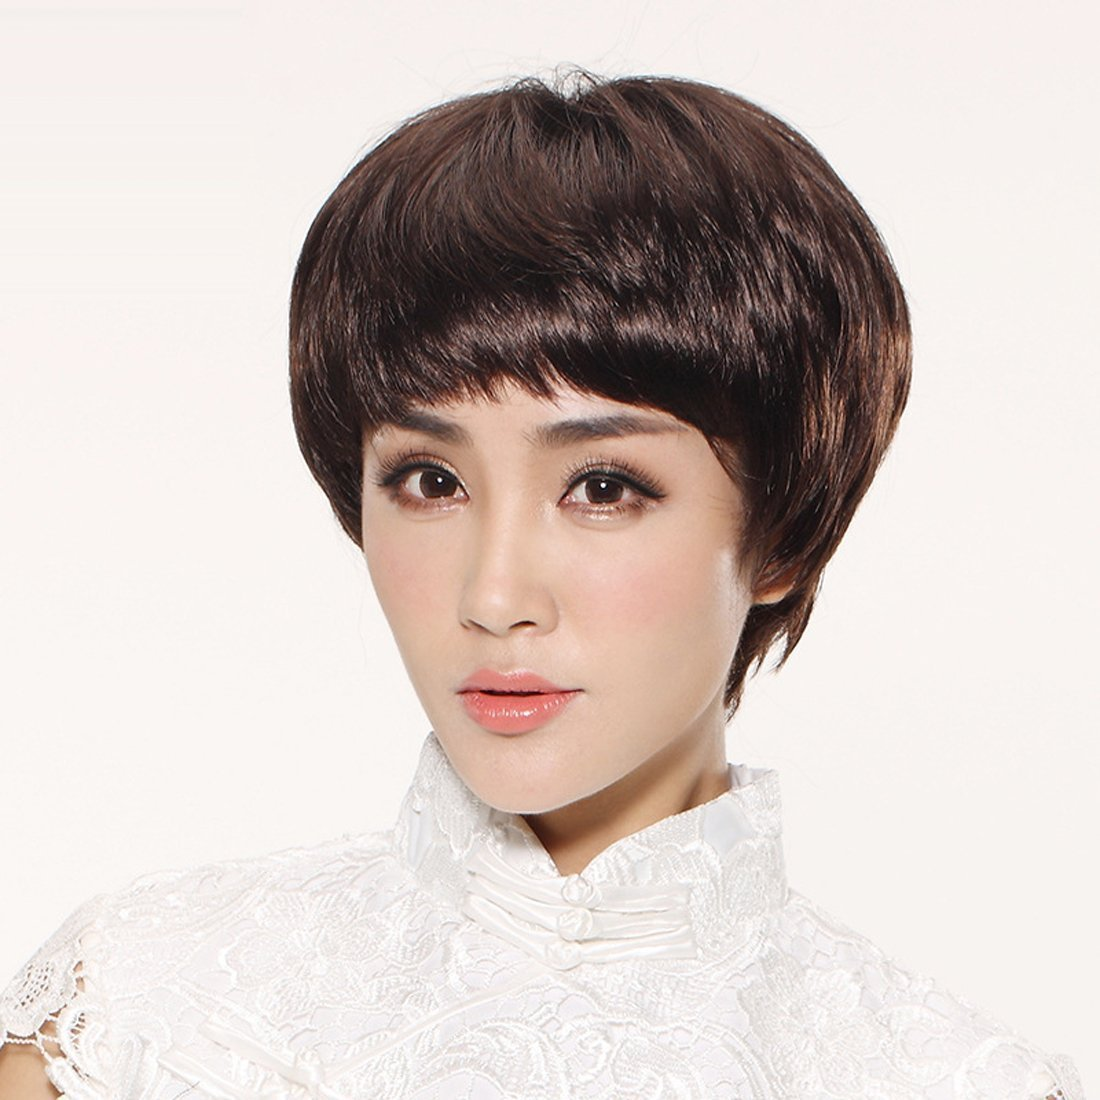 Coolsky Dark Brown Short Stright Wig Mother Wig OL Lady Wig Gift for Mother